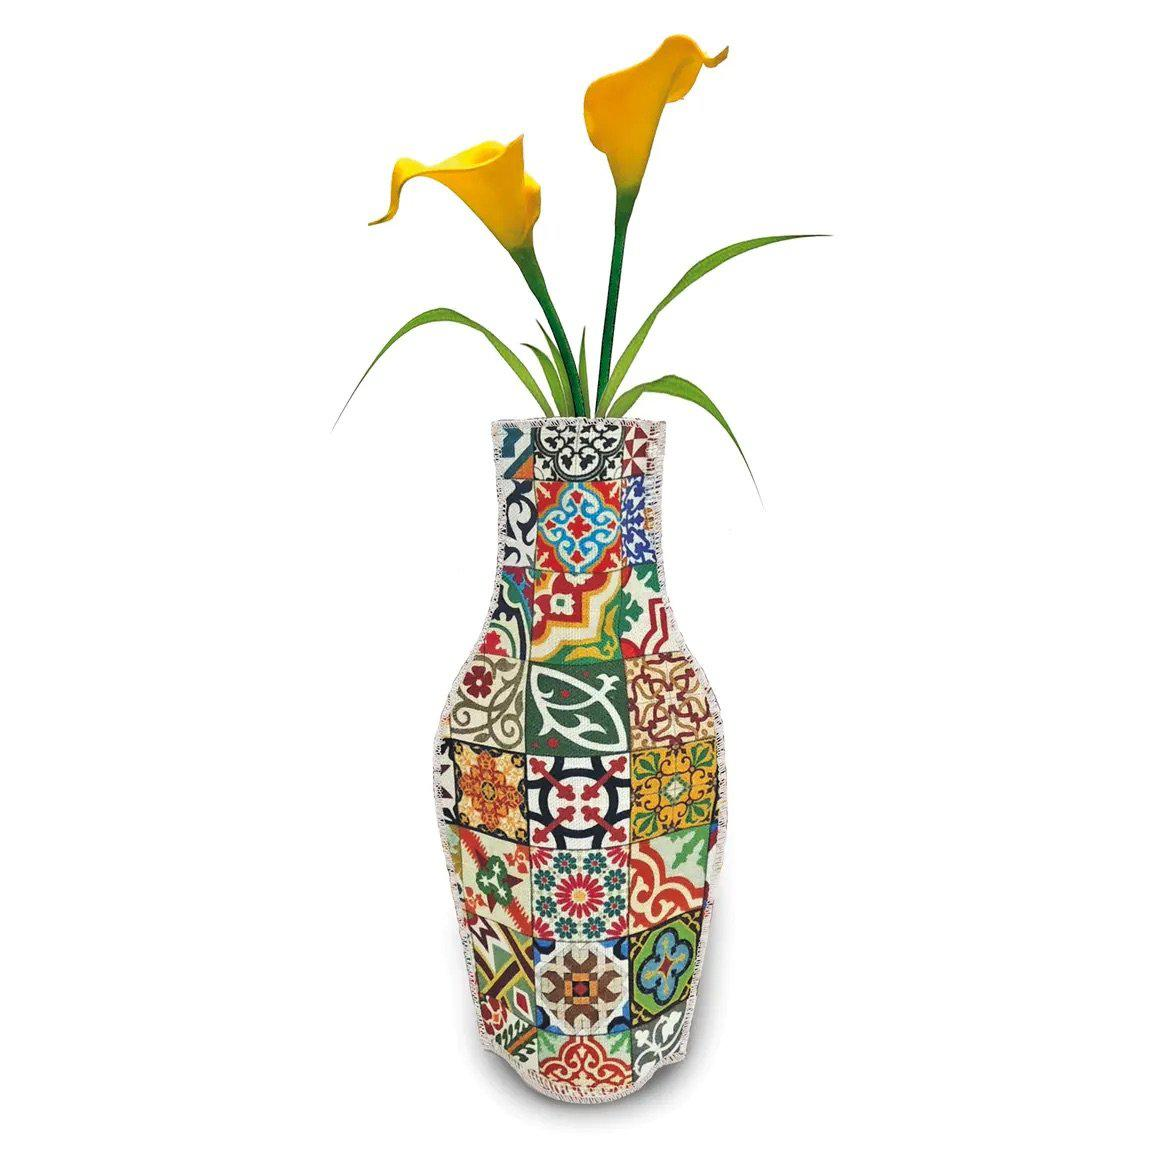 Barceloning Tiles Cotton Flower Vase-Boomingdutch